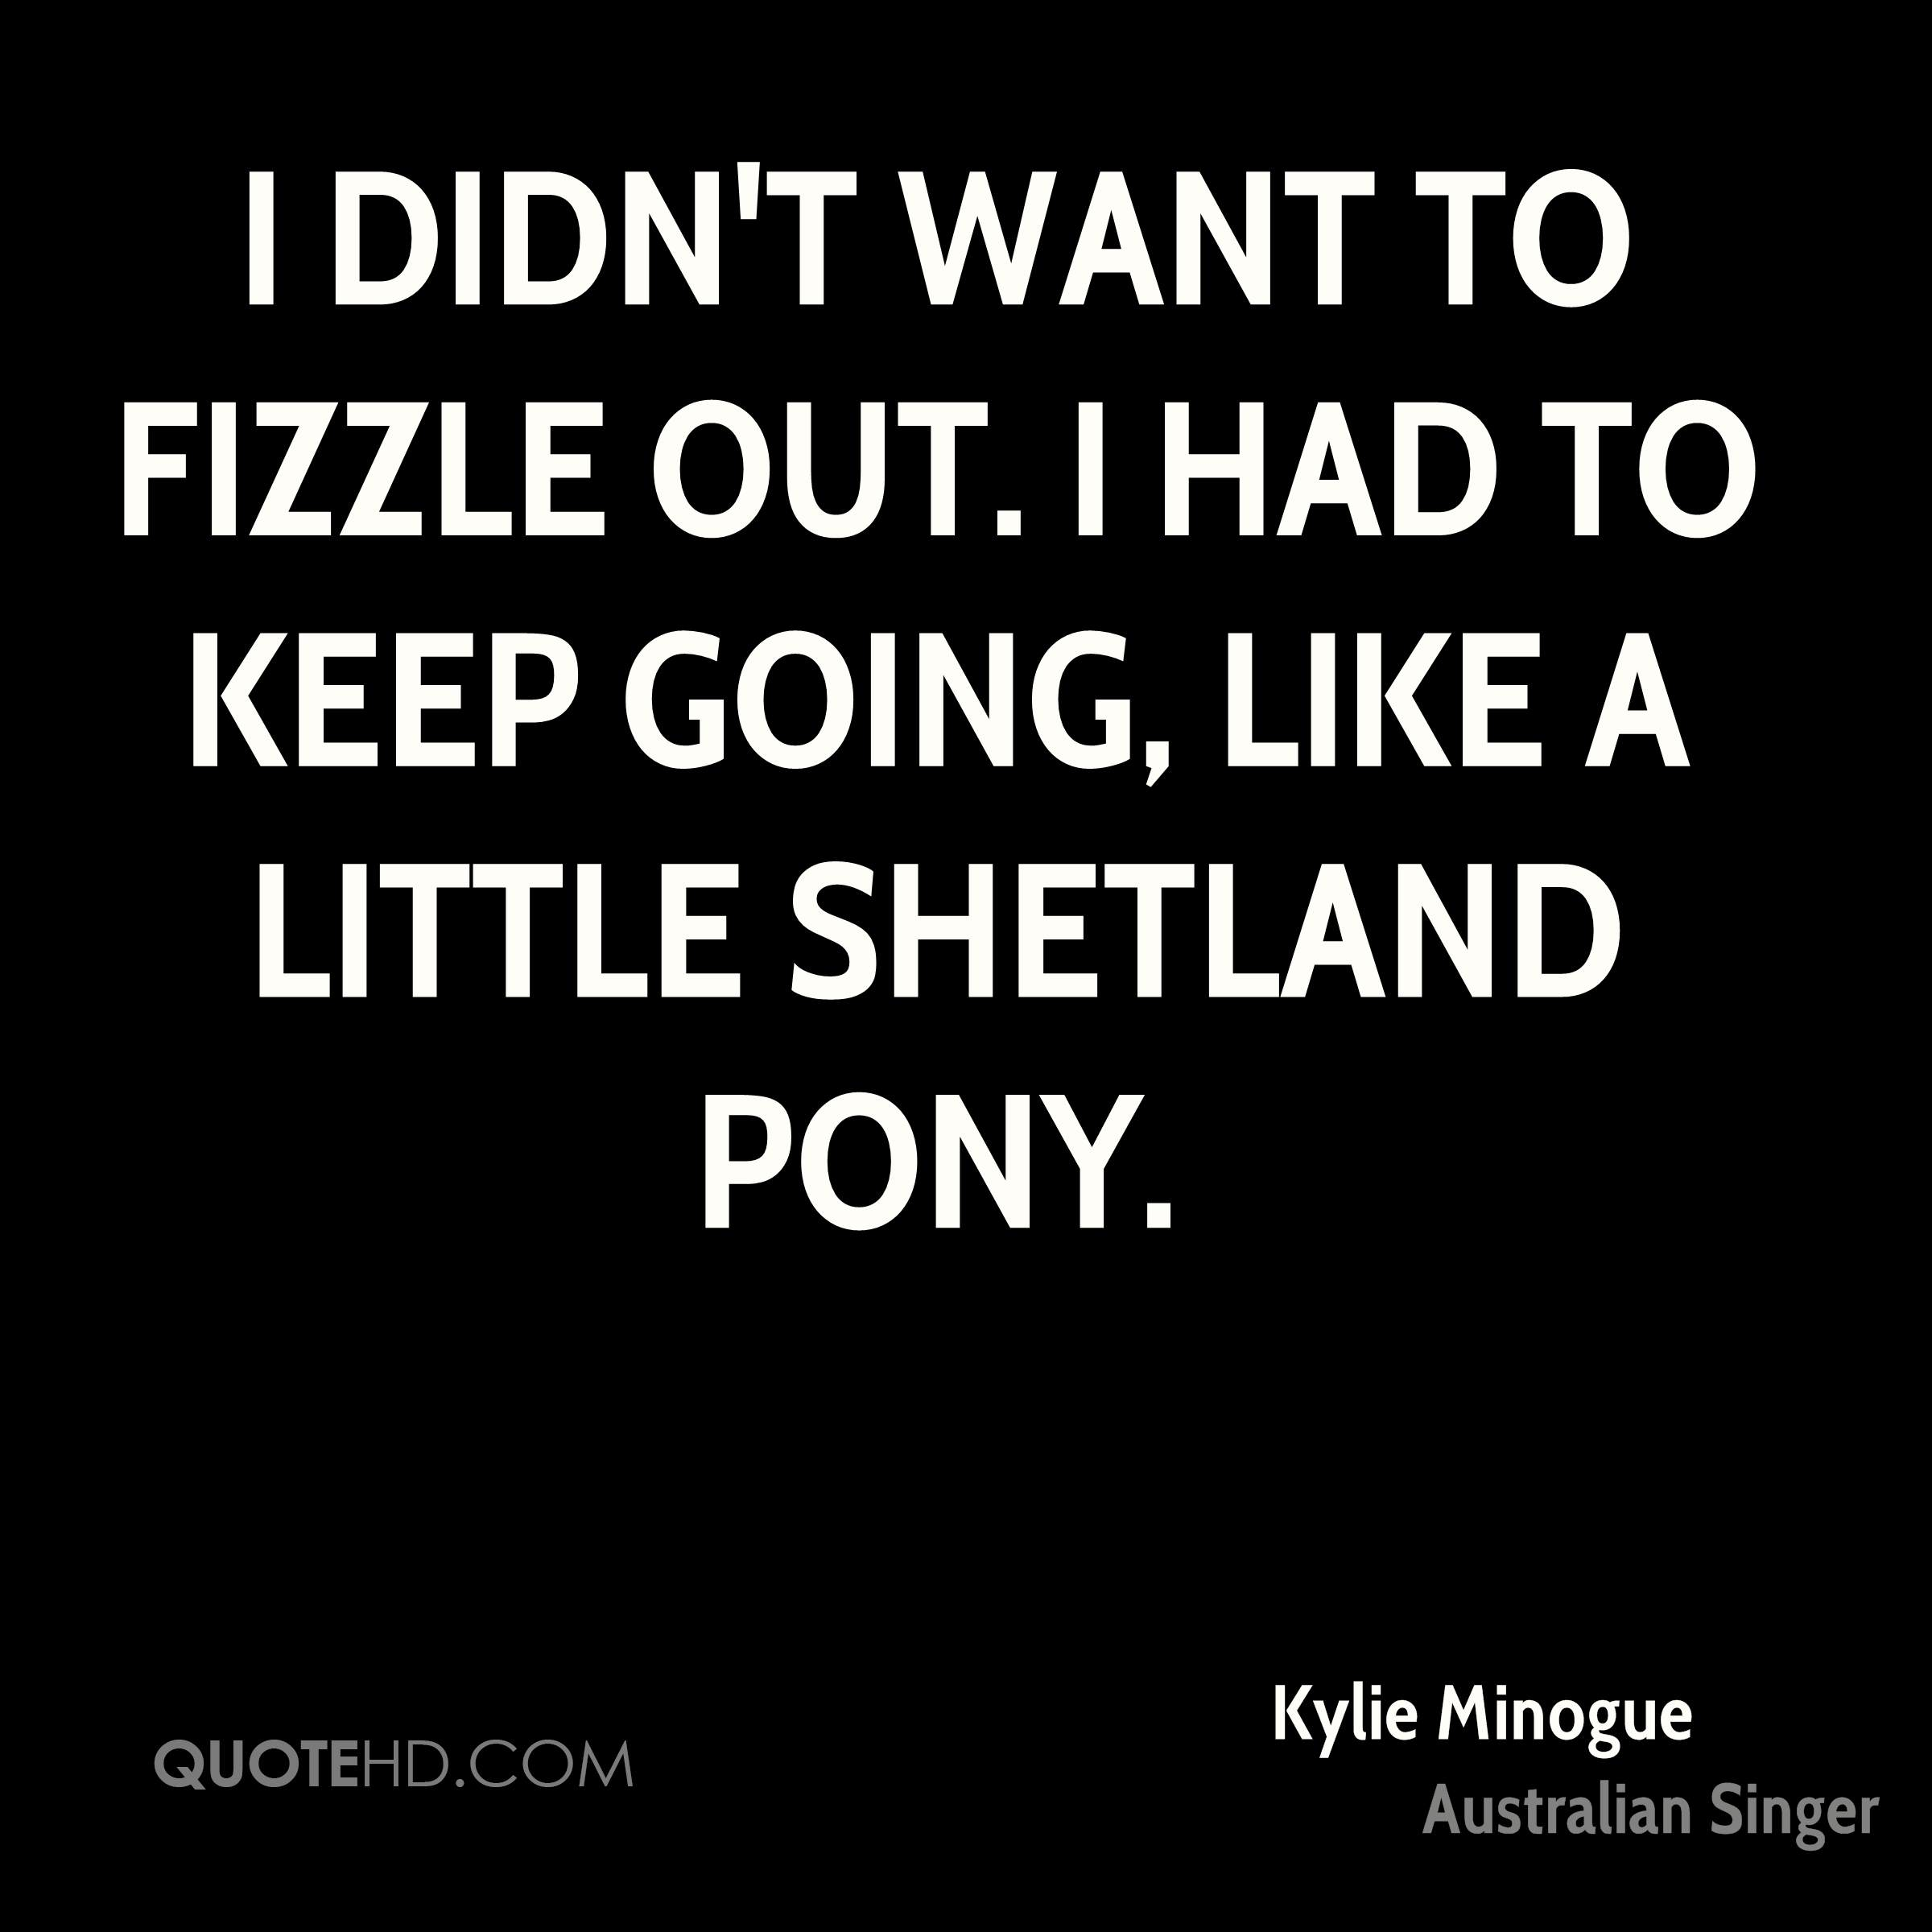 I didn't want to fizzle out. I had to keep going, like a little Shetland pony.